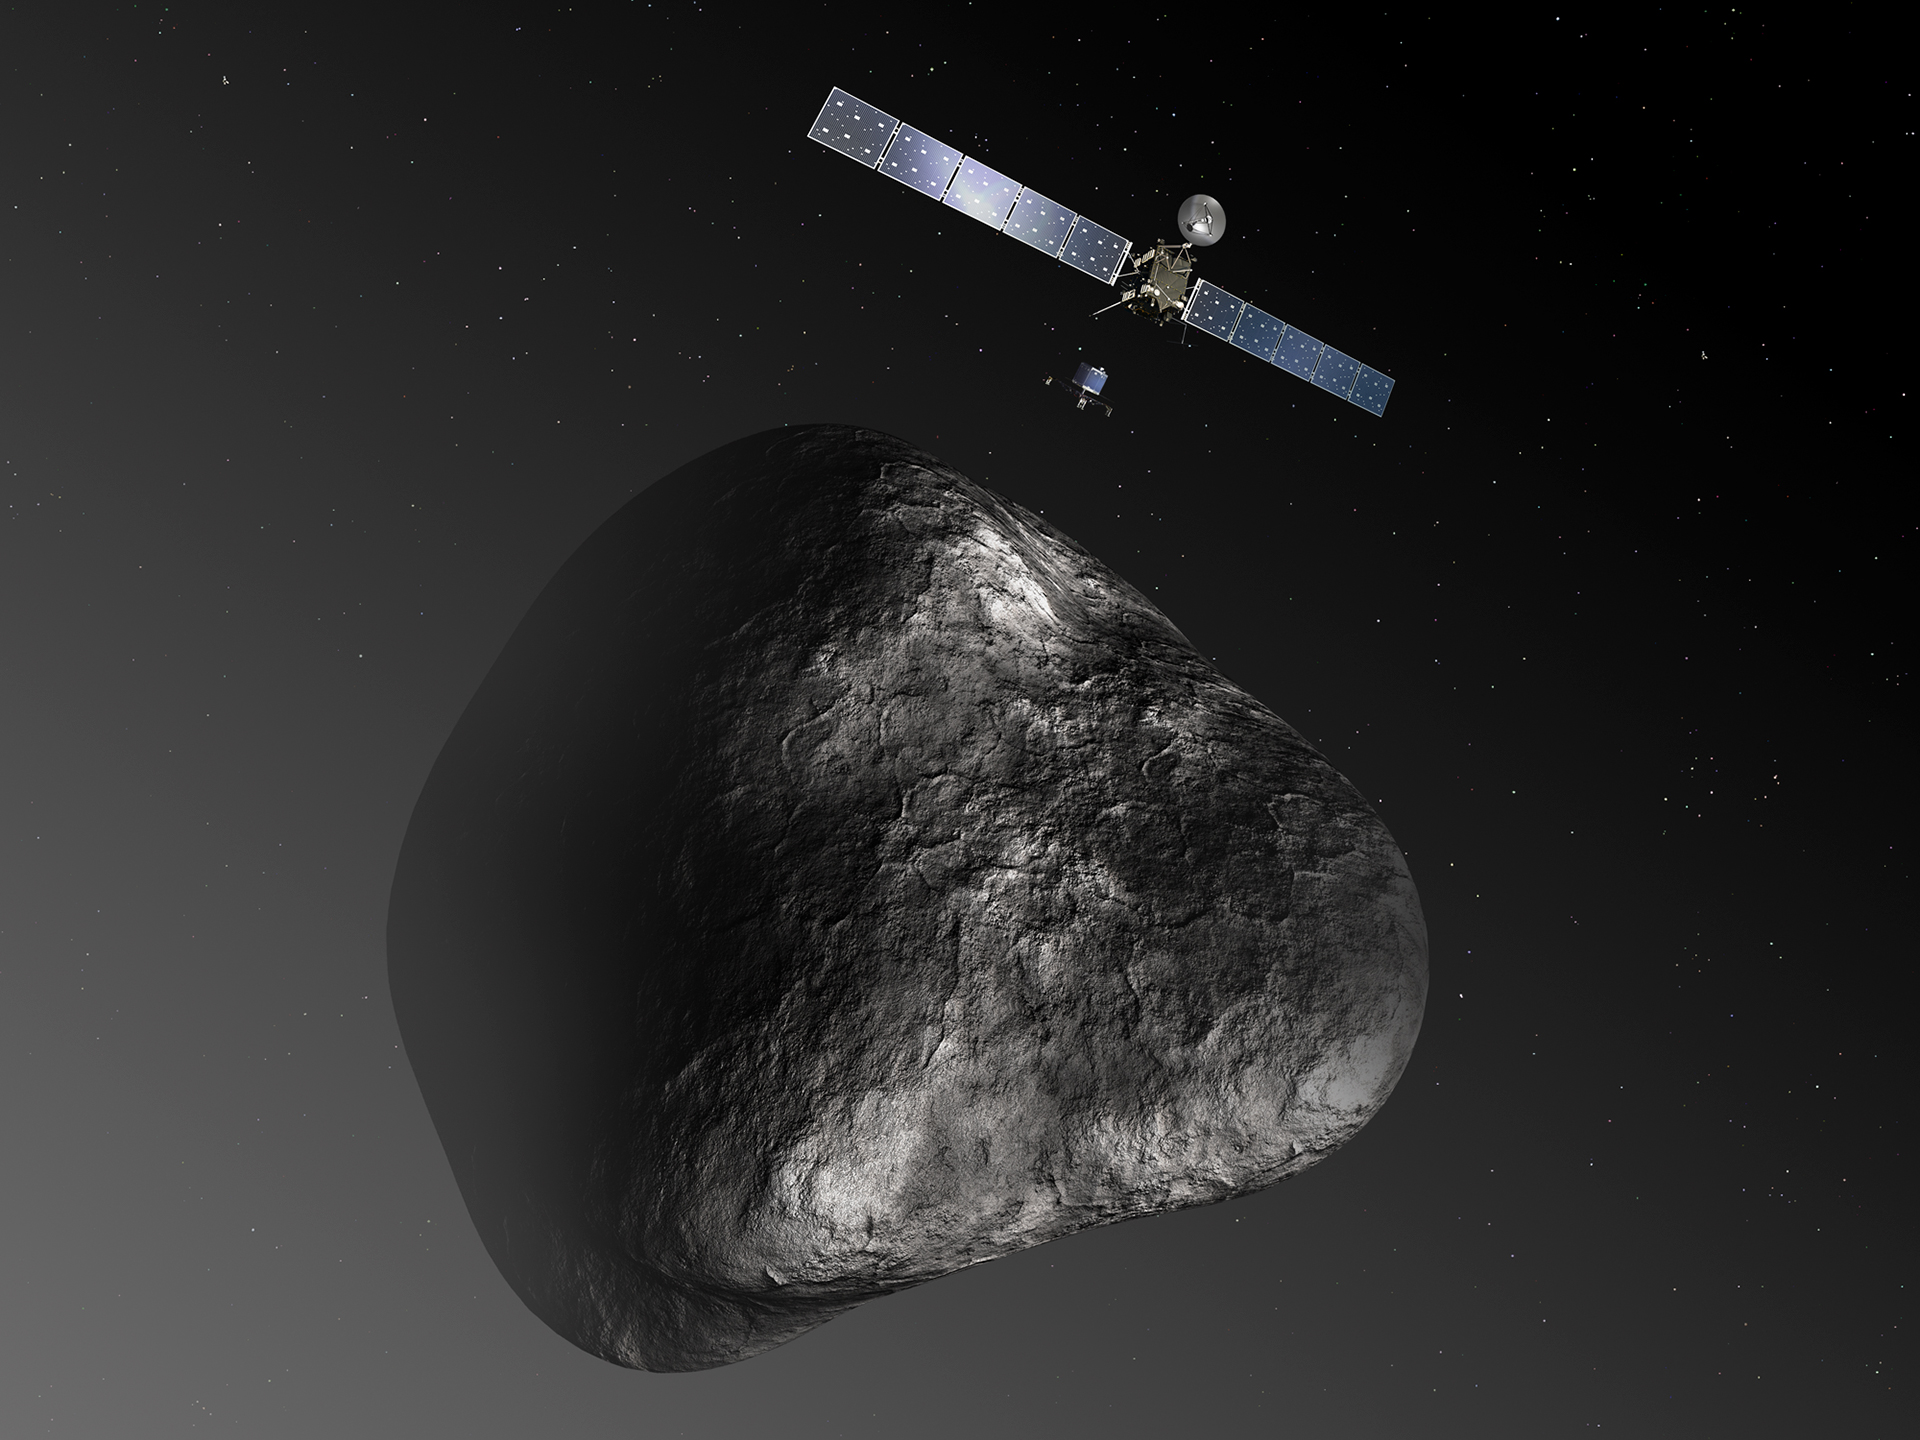 Rosetta Spacecraft: To Catch a Comet